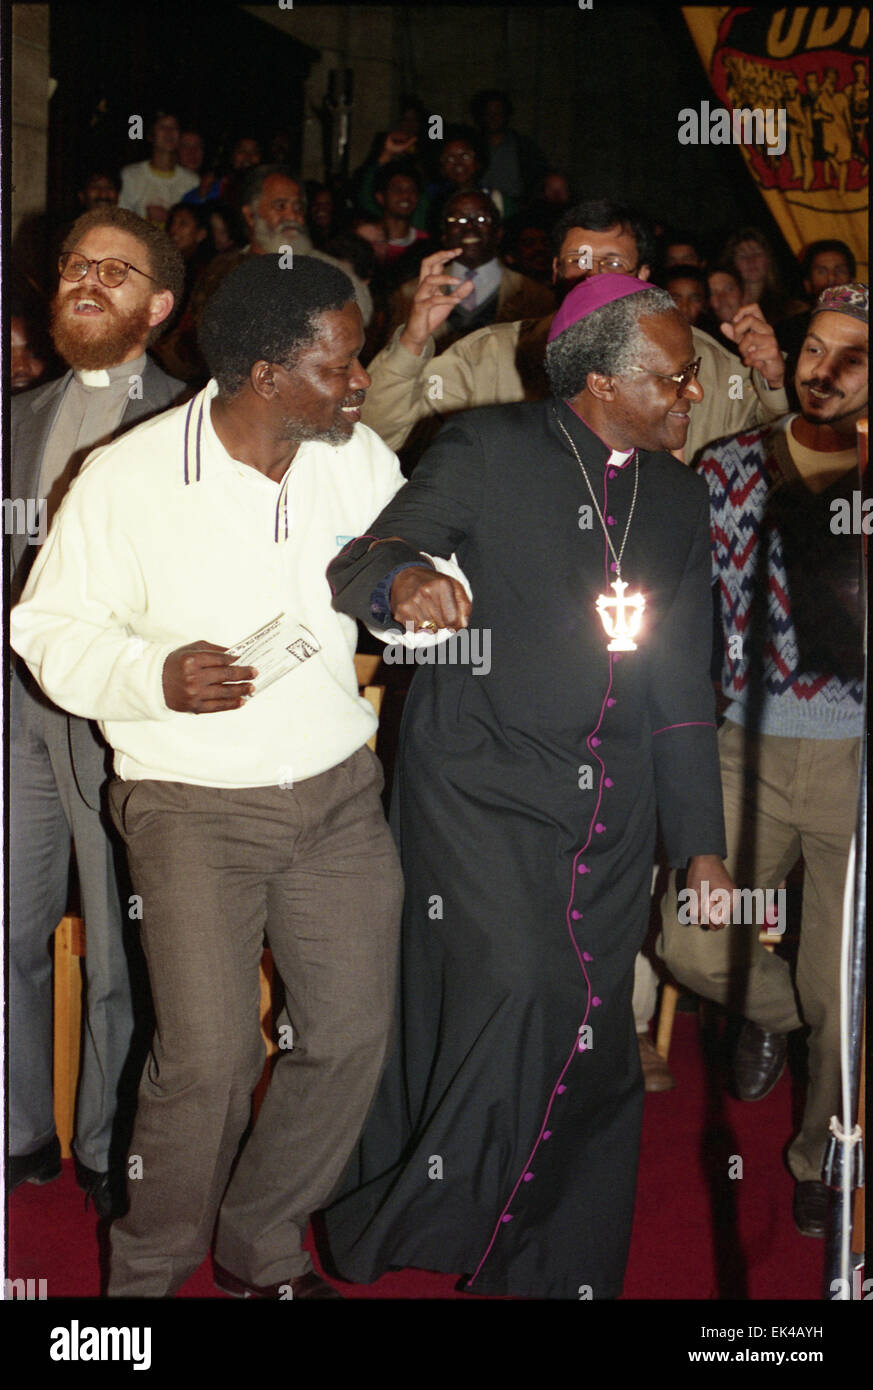 UDF, United Democratic Front's 6th birthday at St George's Cathedral,Cape Town 20 August 1989. The Archbishop - Stock Image